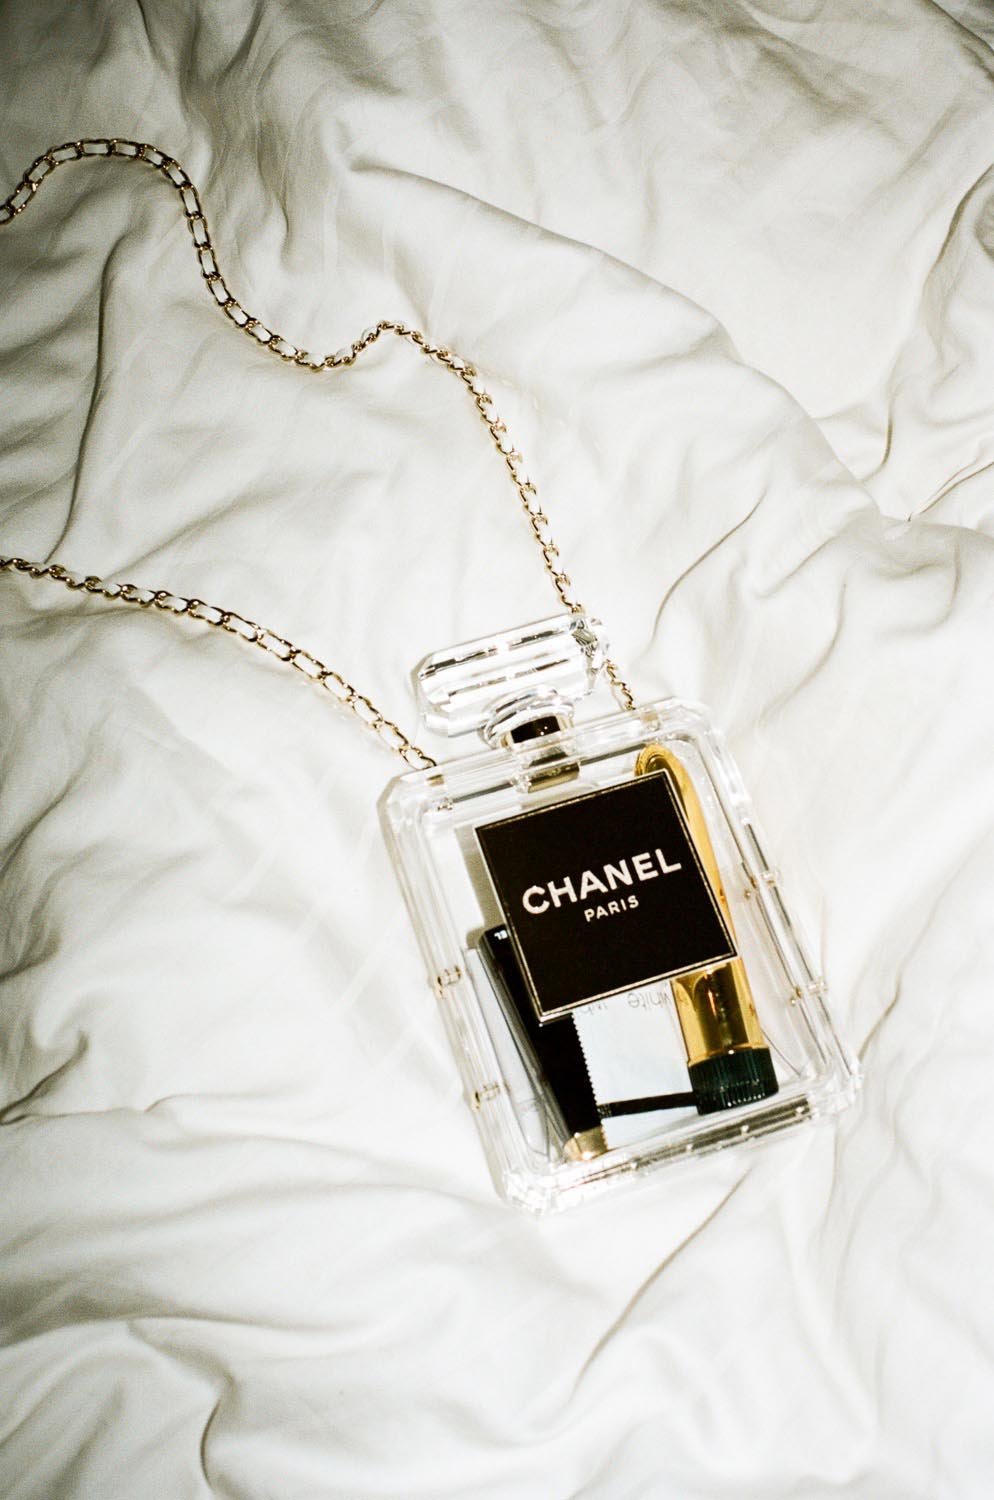 still stills bag chanel sex sexy perv paris vibrator gold golden